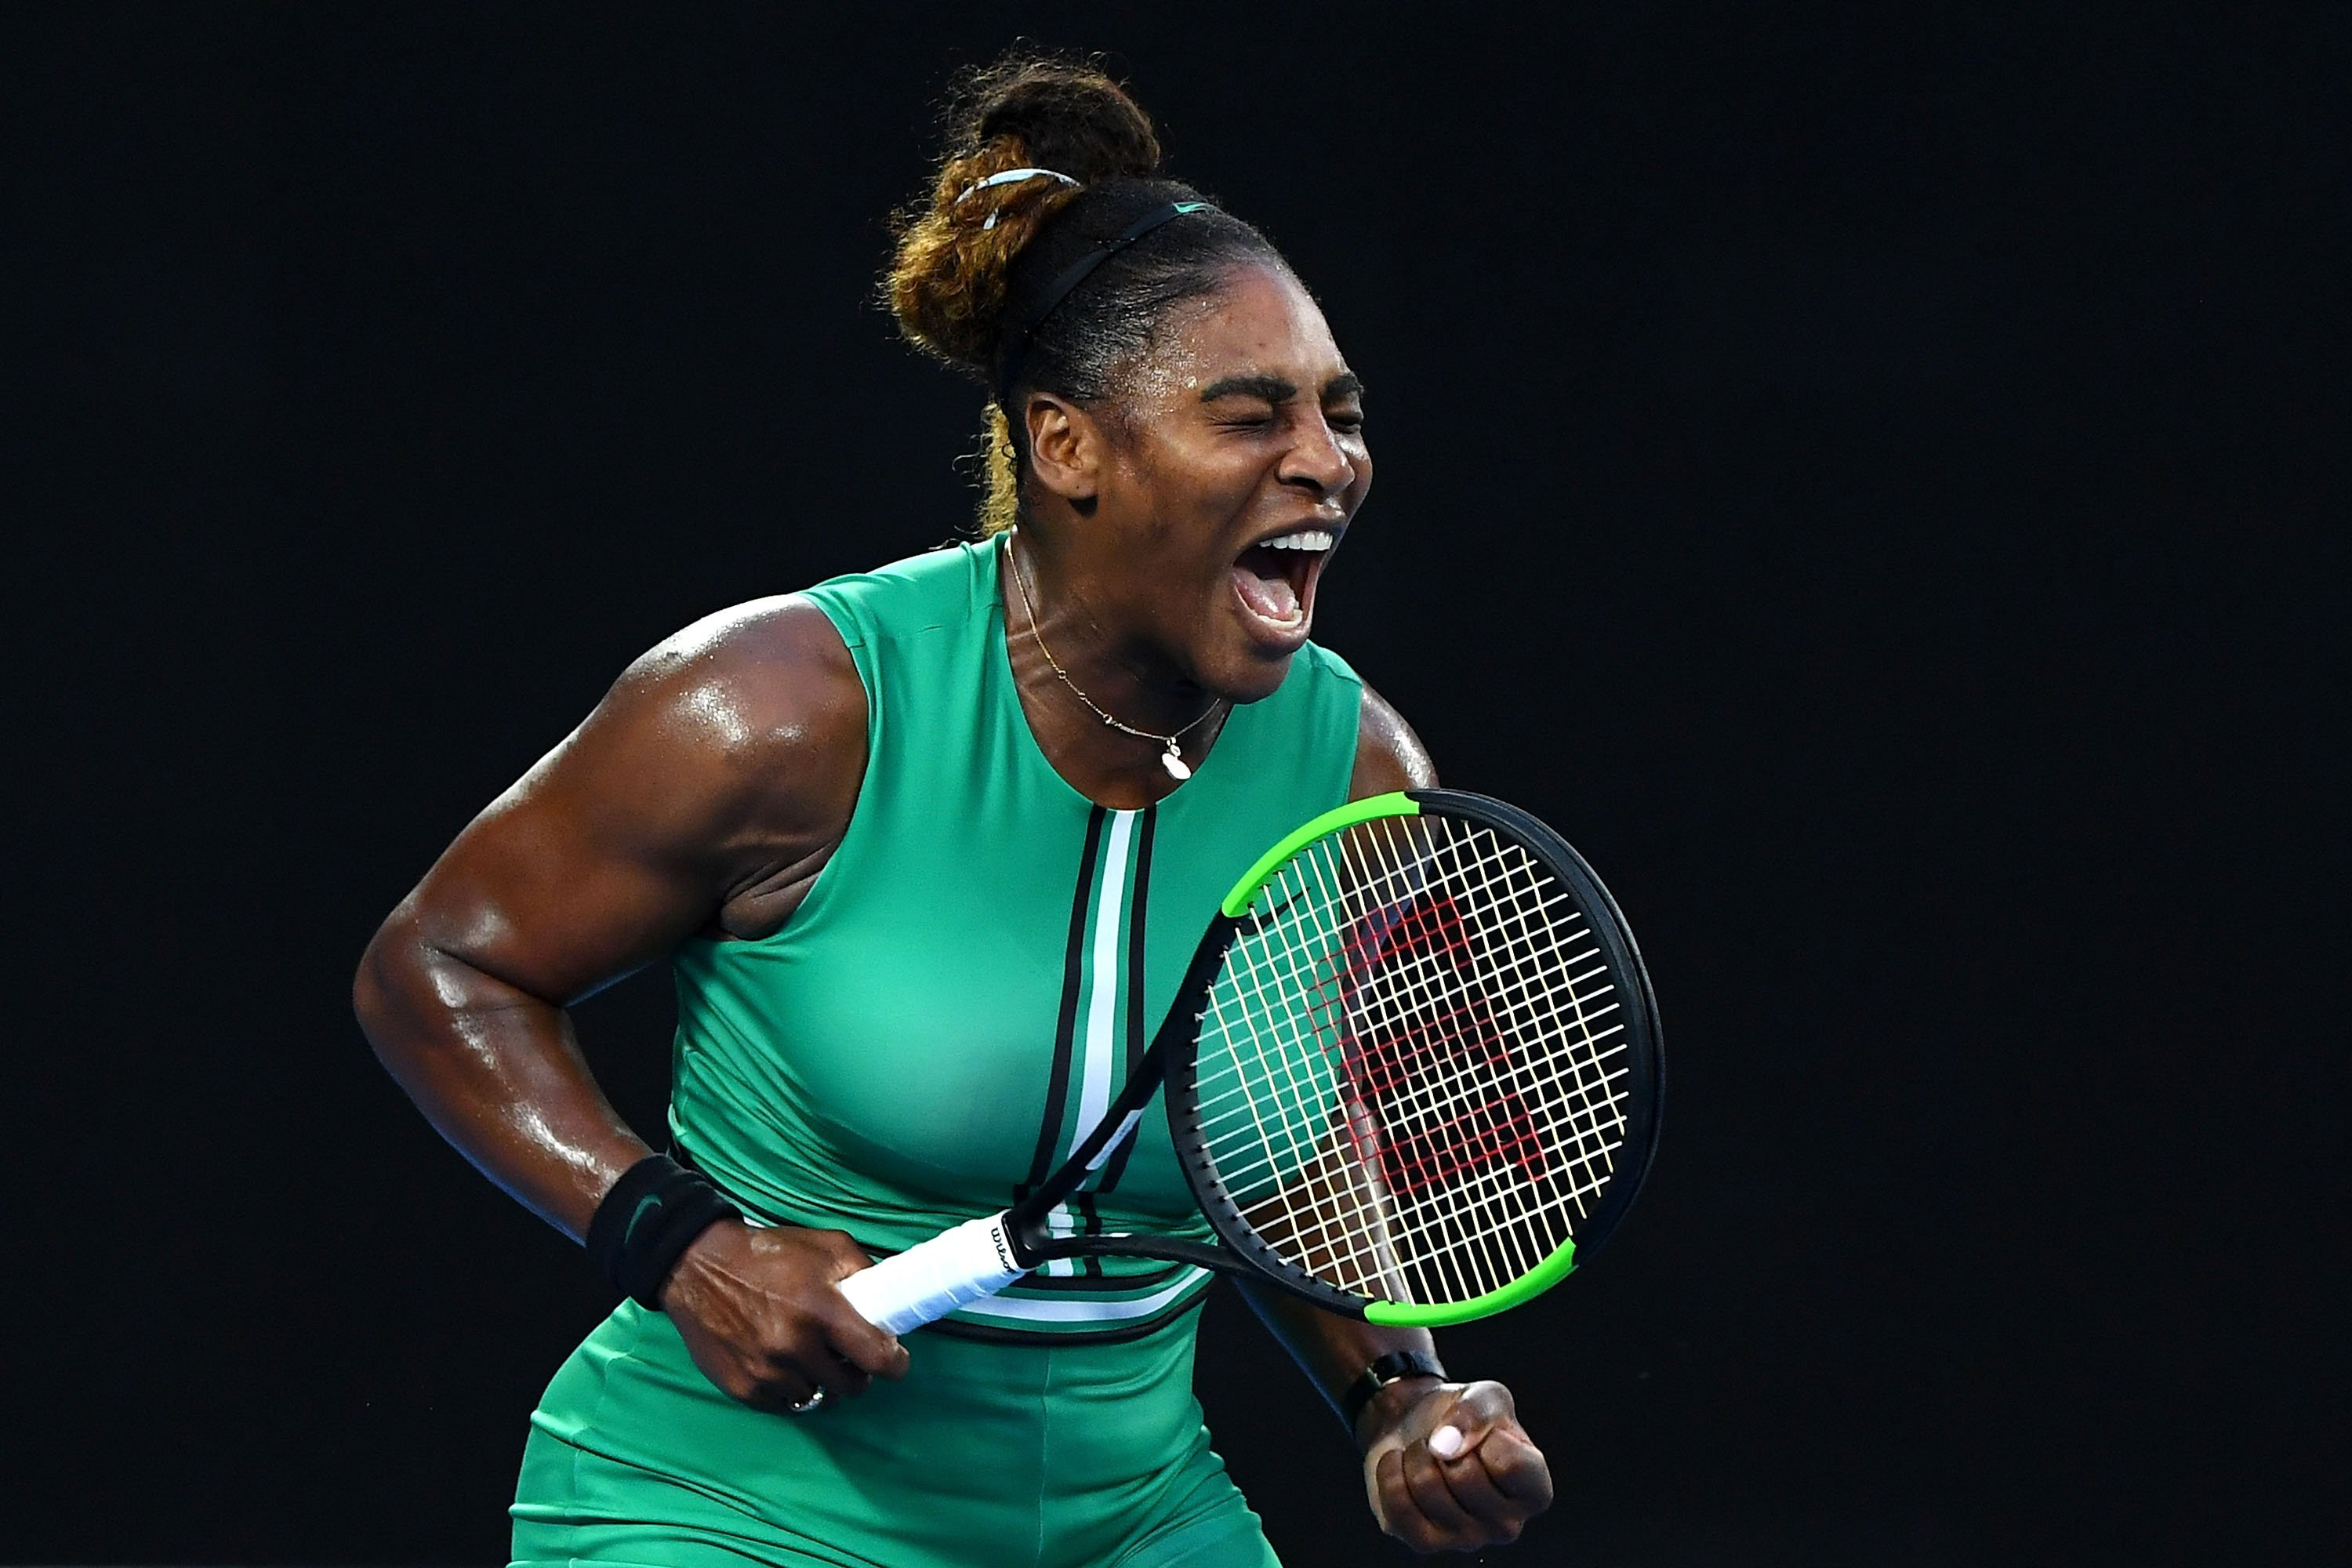 Serena Williams showing her emotions during her game at the 2017 Australian Open in Melbourne, Australia.   Photo: Getty Images